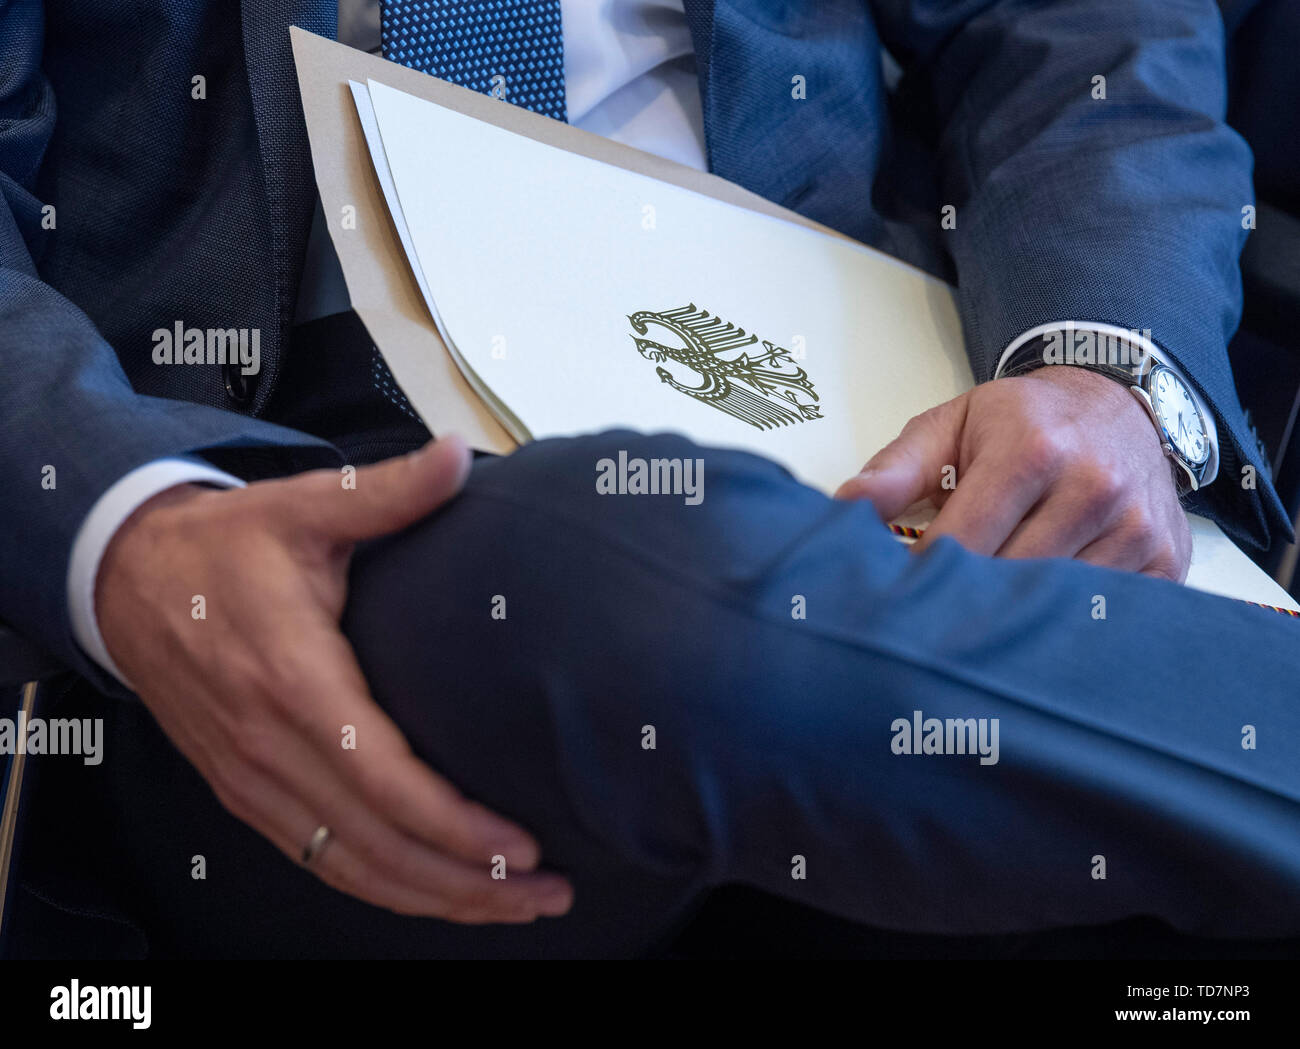 Mainz, Germany. 13th June, 2019. A golden federal eagle adorns the front of the 'certificate of acceptance' which the representative of a mobile phone company has just received. A total of four bidders took part in the auction, which generated total proceeds of 6.5 billion euros. Credit: Boris Roessler/dpa/Alamy Live News - Stock Image